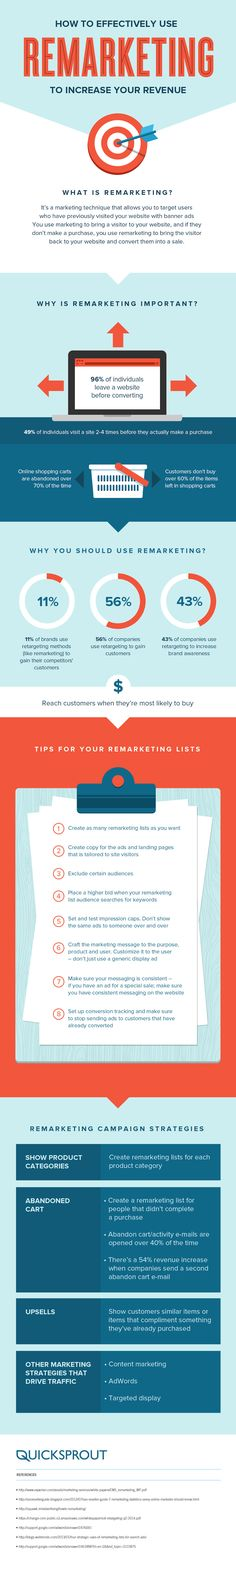 How to Effectively Use Remarketing to Increase Your Revenue Infographic #digitalmarketing